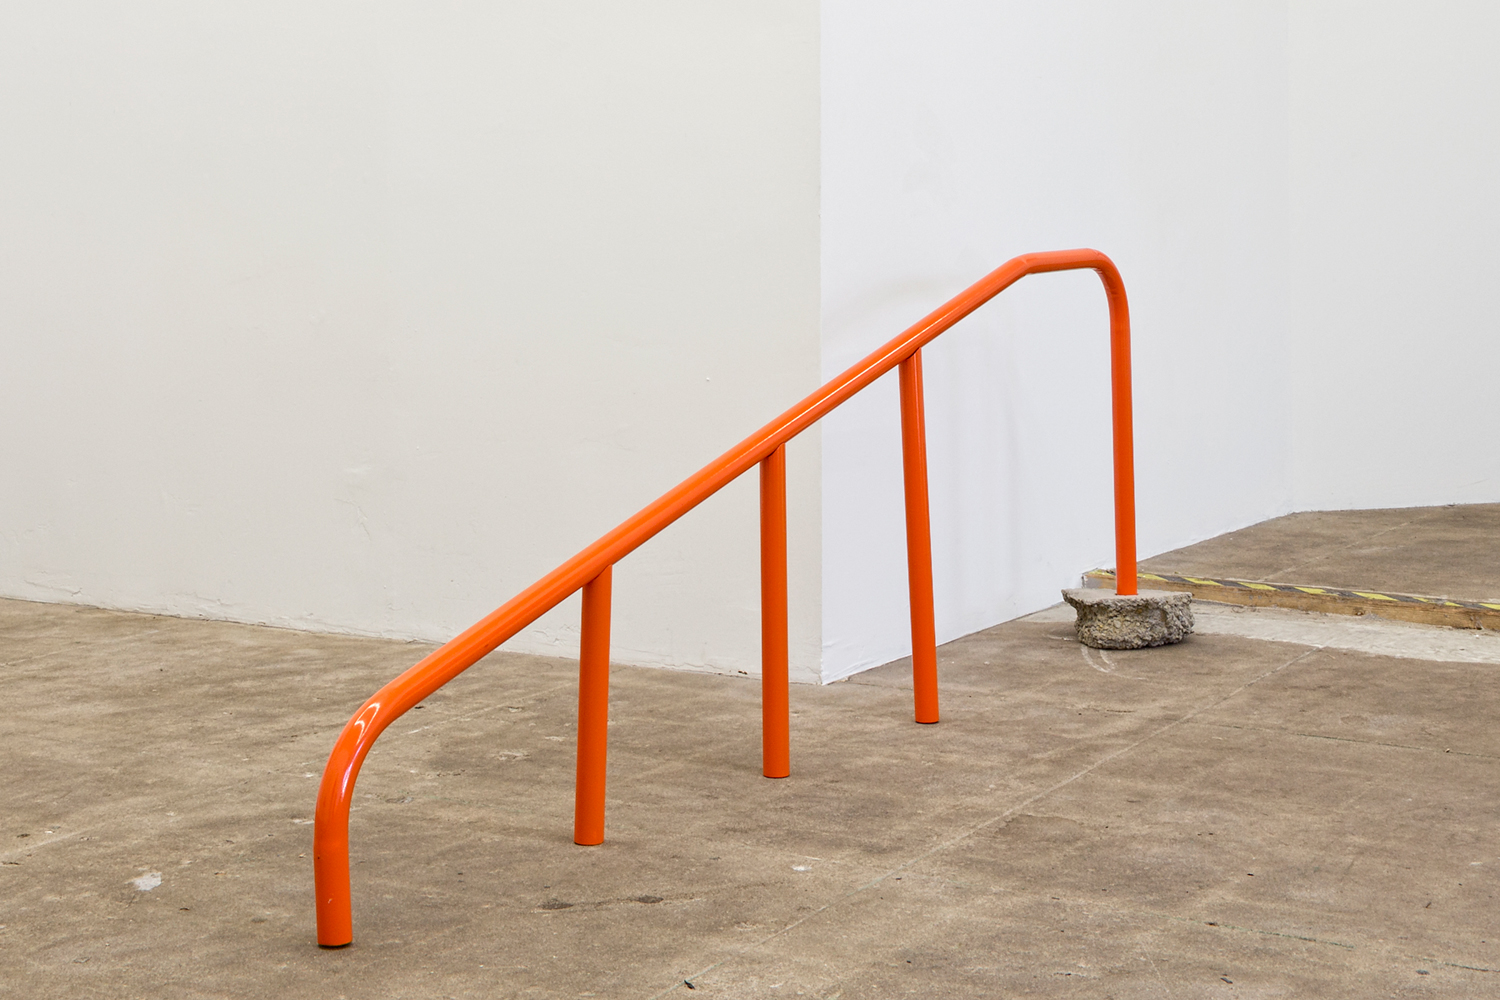 ces_gallery_tanya_brodsky_orange_handrail_too_low_2.jpg